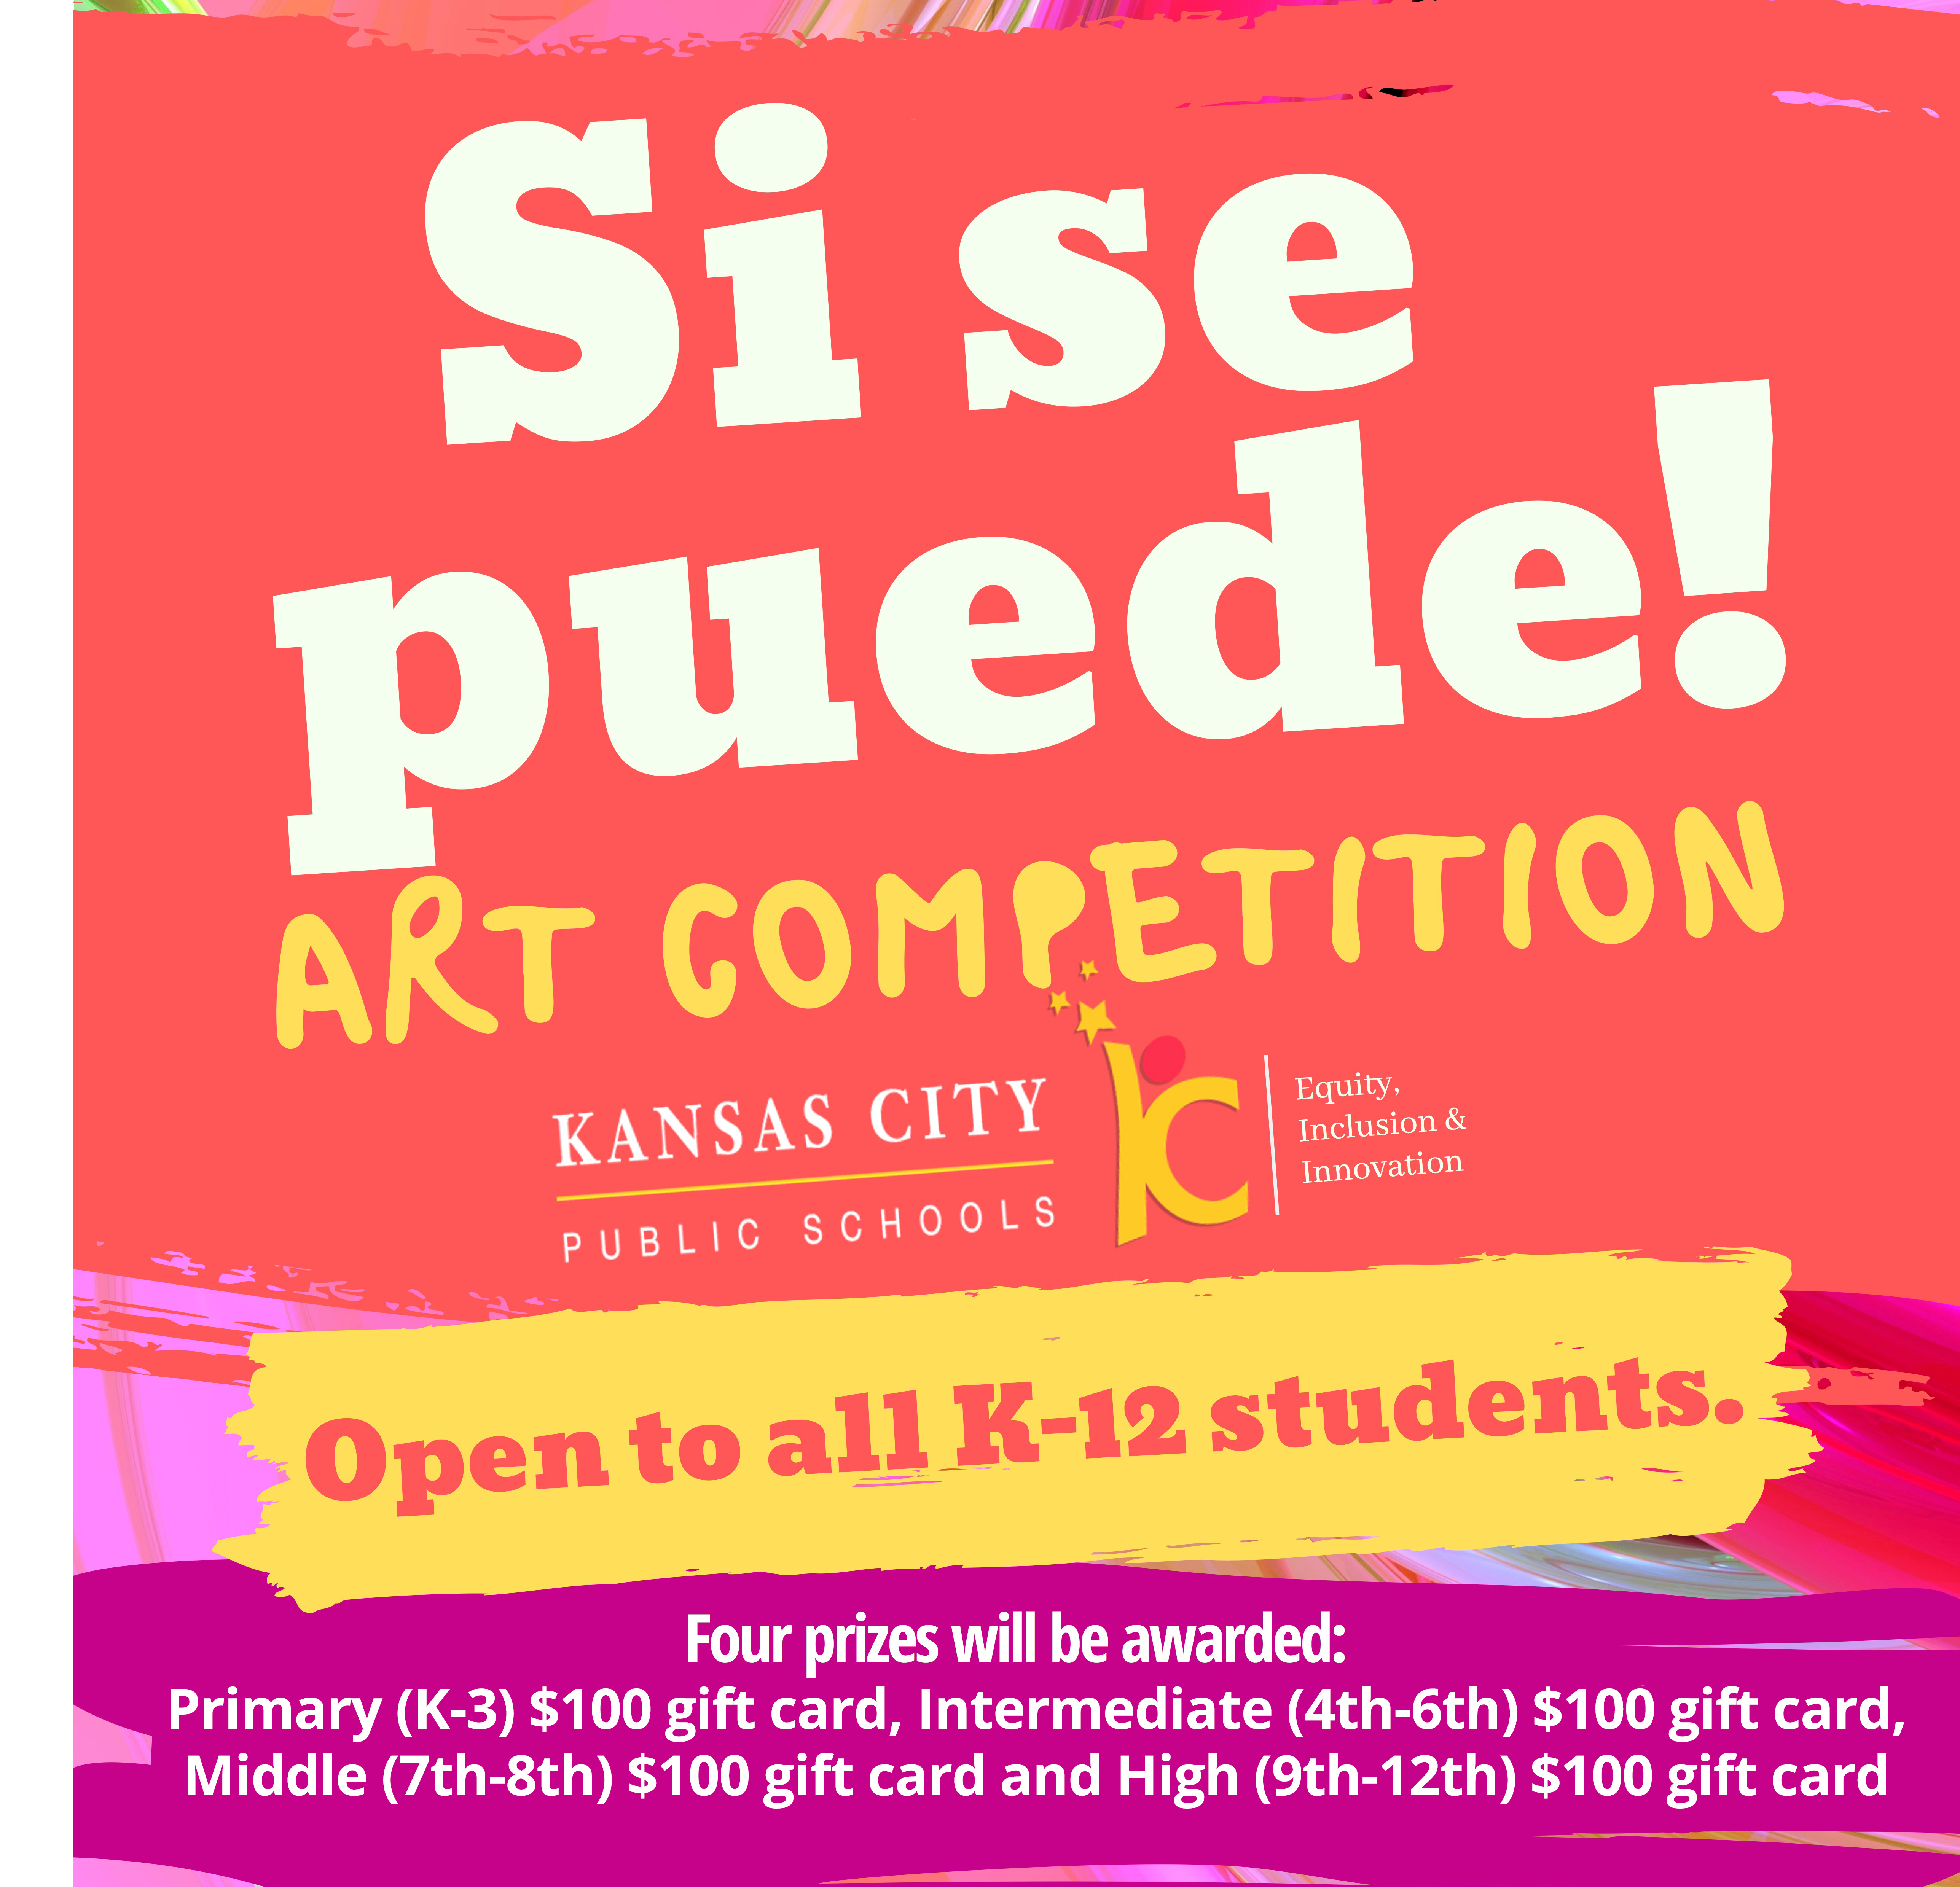 SiSePuede_ARTCompetition2021_square.jpg